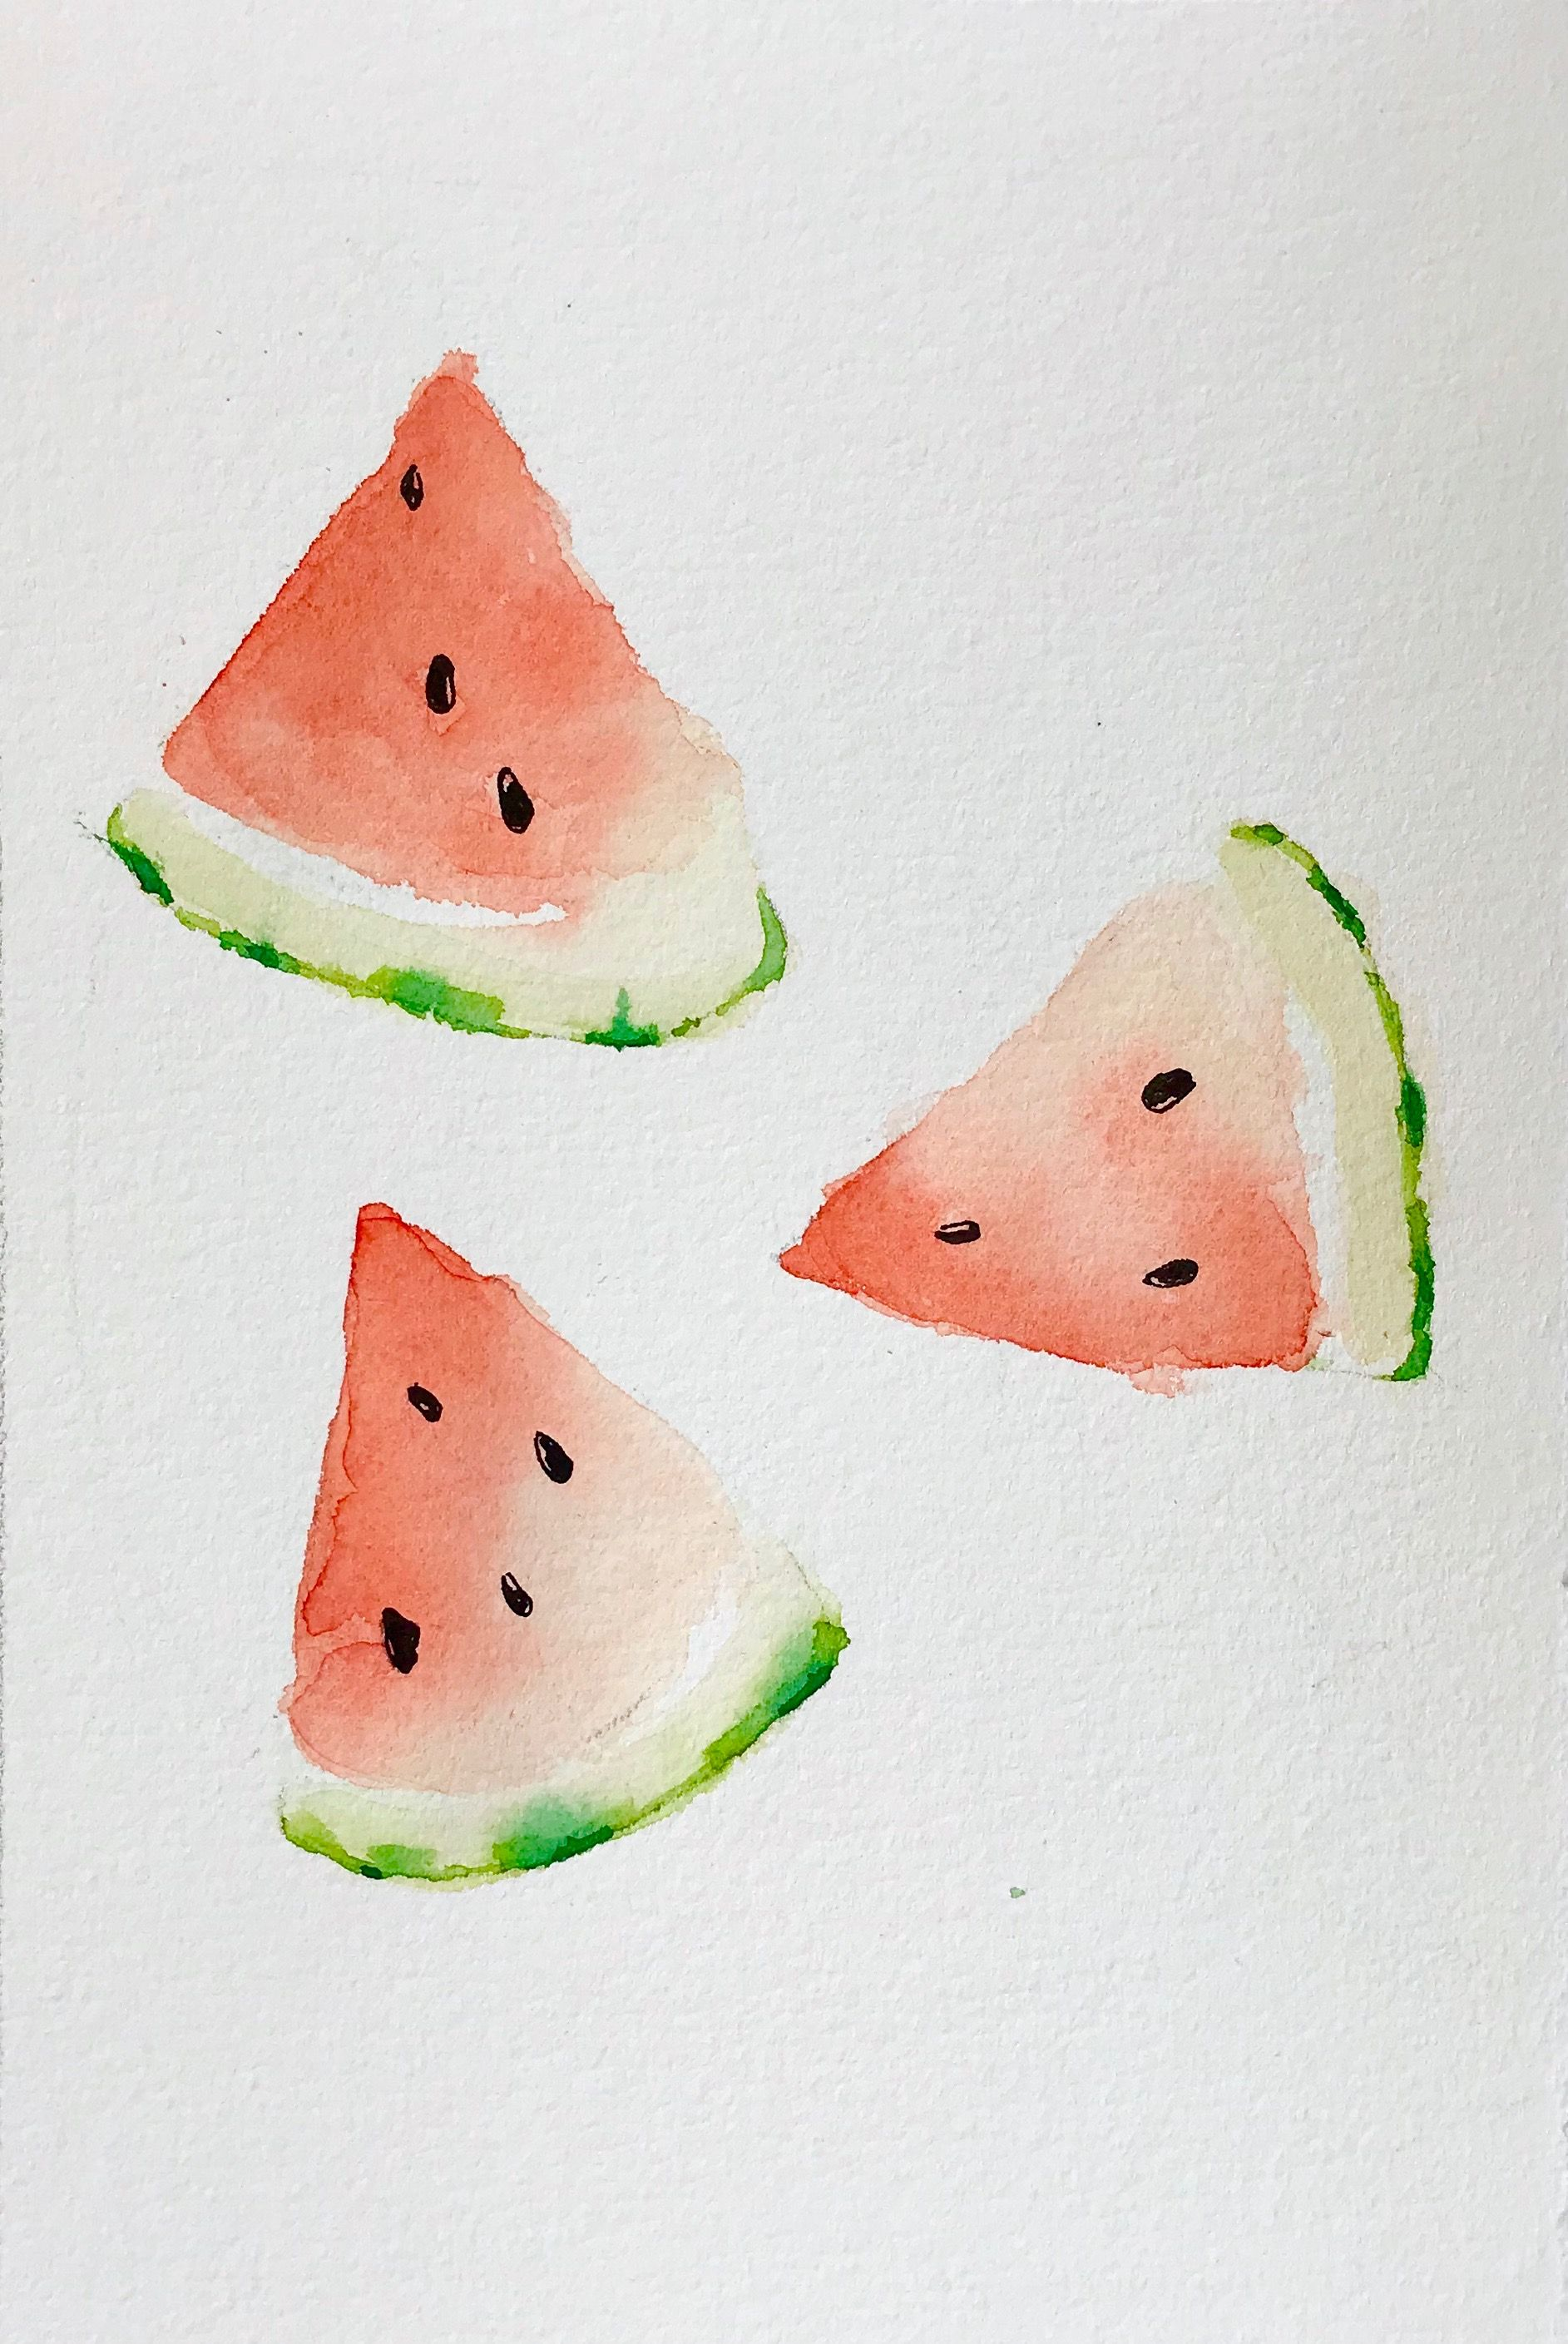 Watermelon Watercolor Painting Tutorial And Home Decor Ideas With